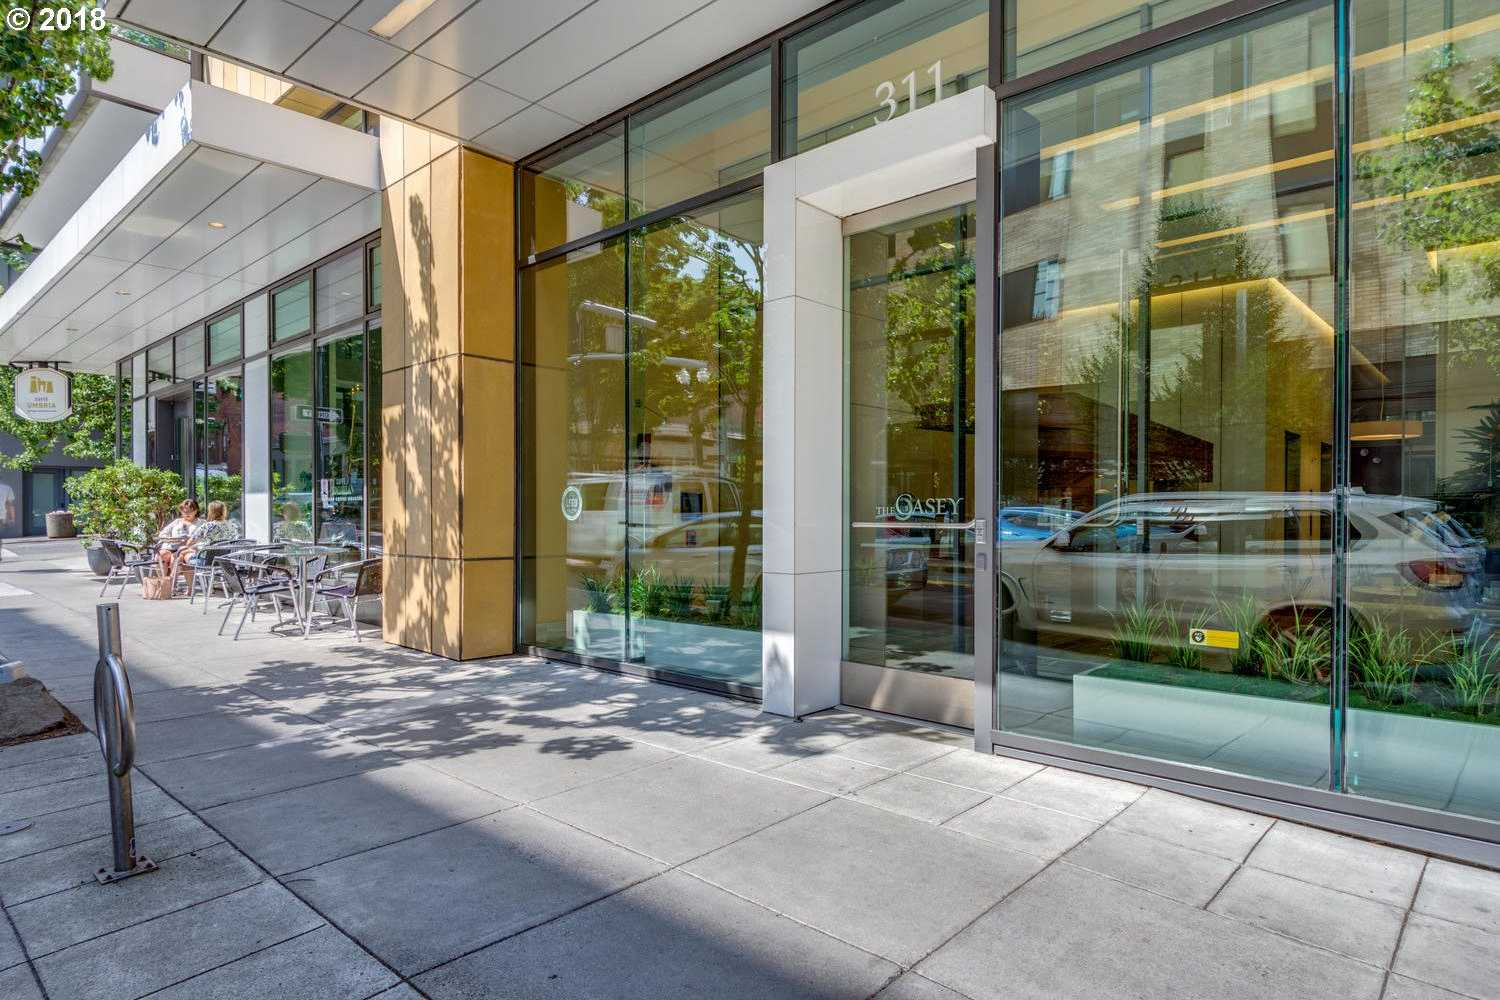 $1,425,000 - 2Br/2Ba -  for Sale in Pearl District / The Casey, Portland